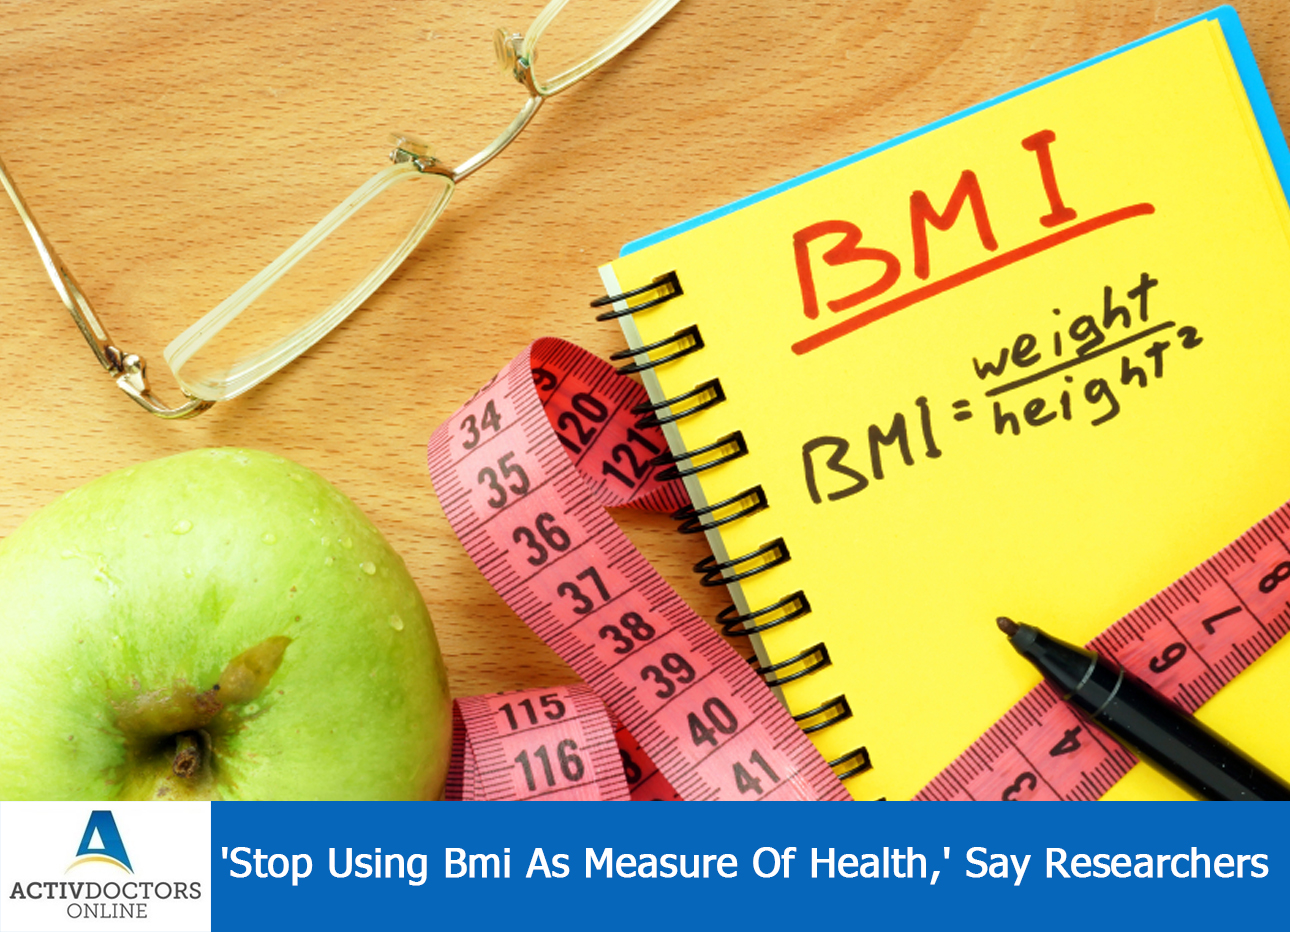 'Stop Using Bmi As Measure Of Health,' Say Researchers